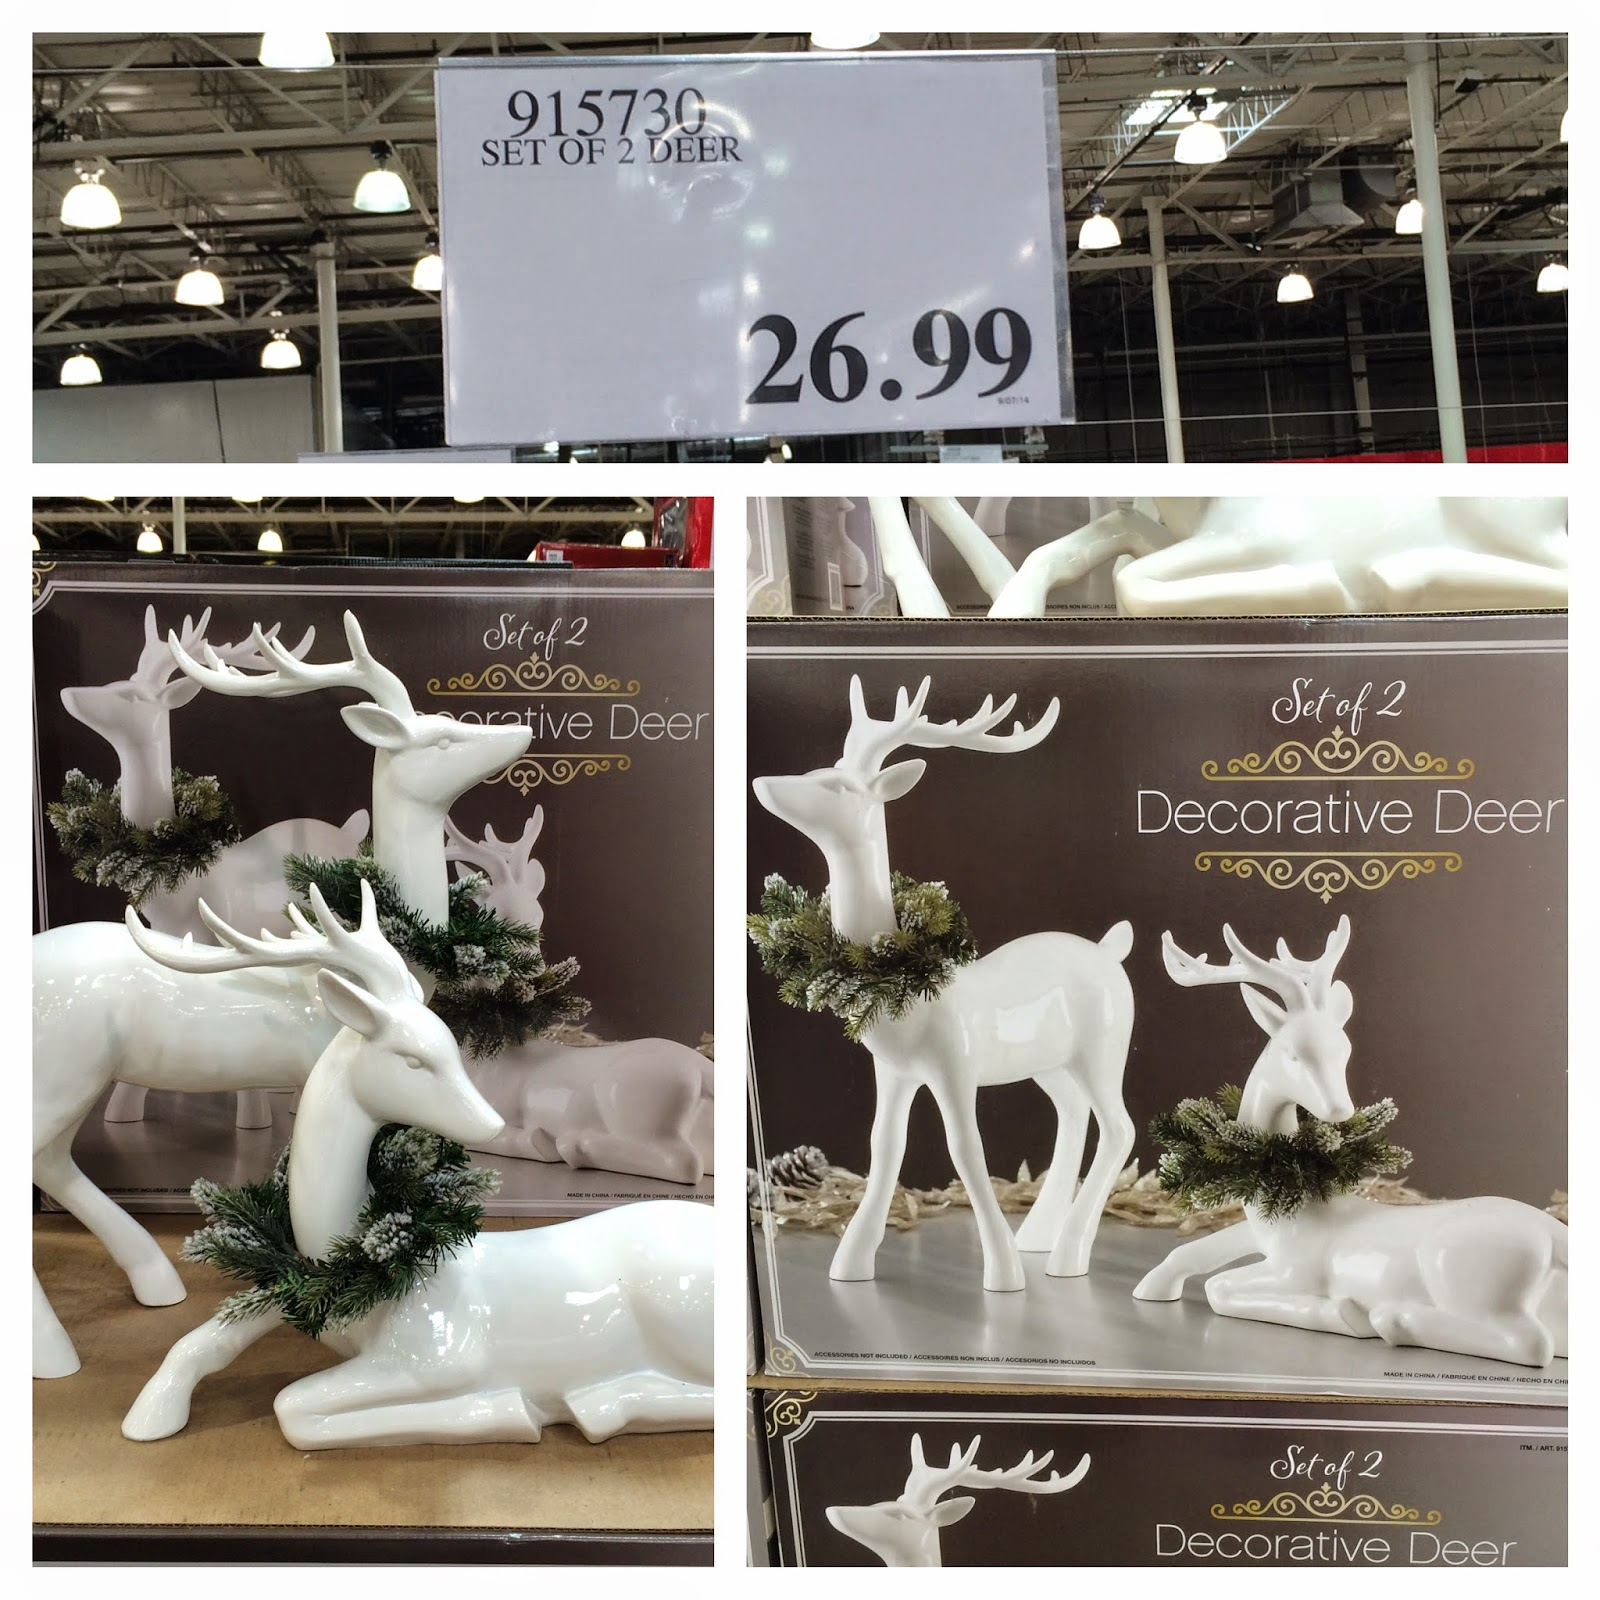 the costco connoisseur 2014 - Costco Christmas Decorations 2017 Australia